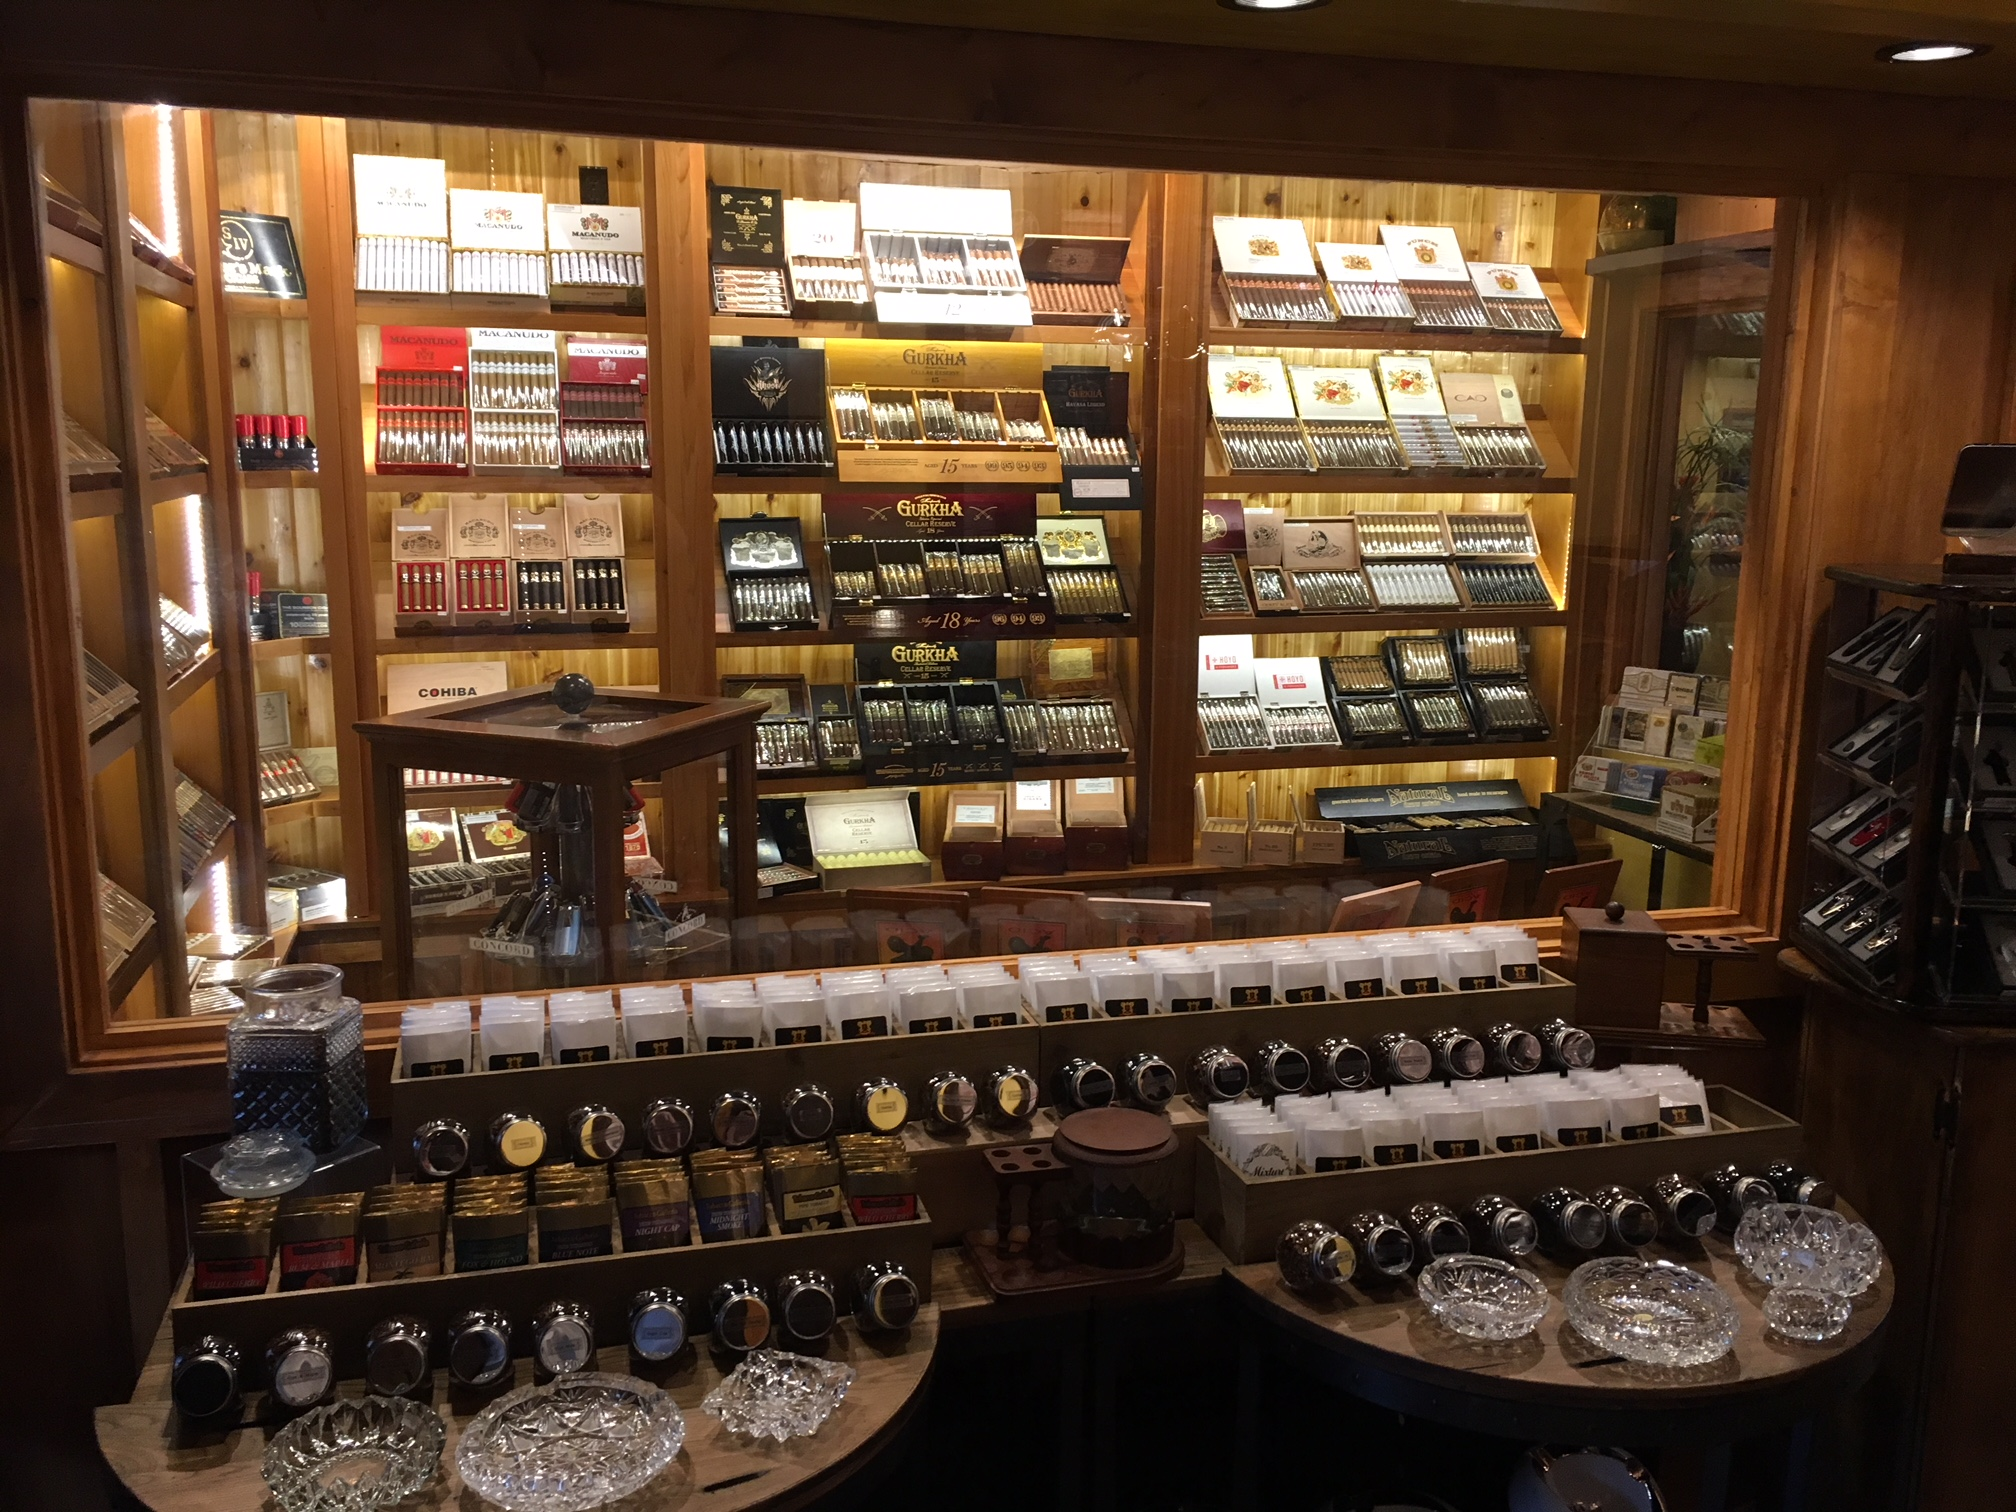 Stogies Cigars at Fort Alley image 1